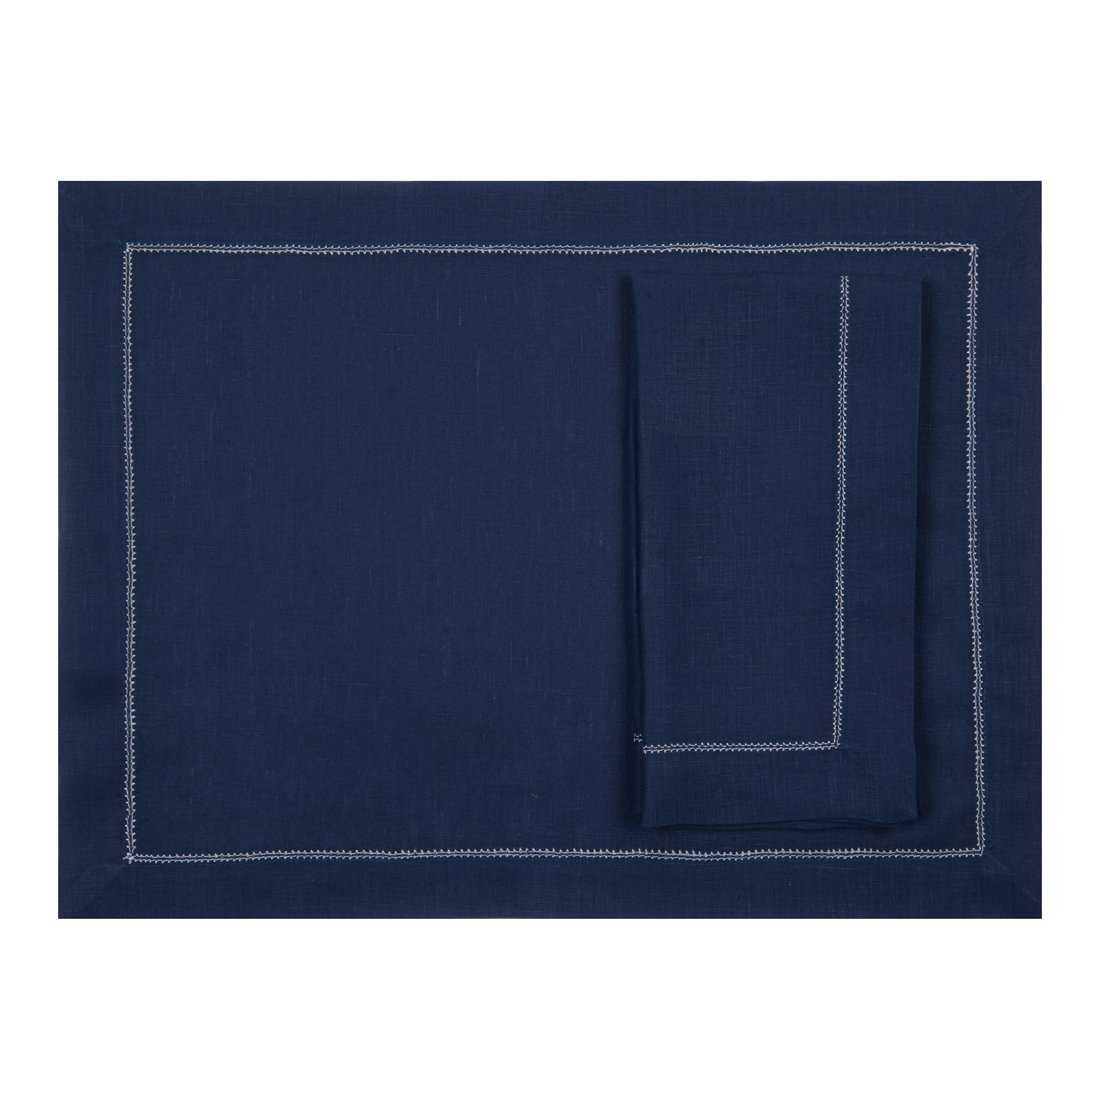 Navy Blue Pure Linen Placemat With Ivory Contrast Hemstitch (Set of Six)